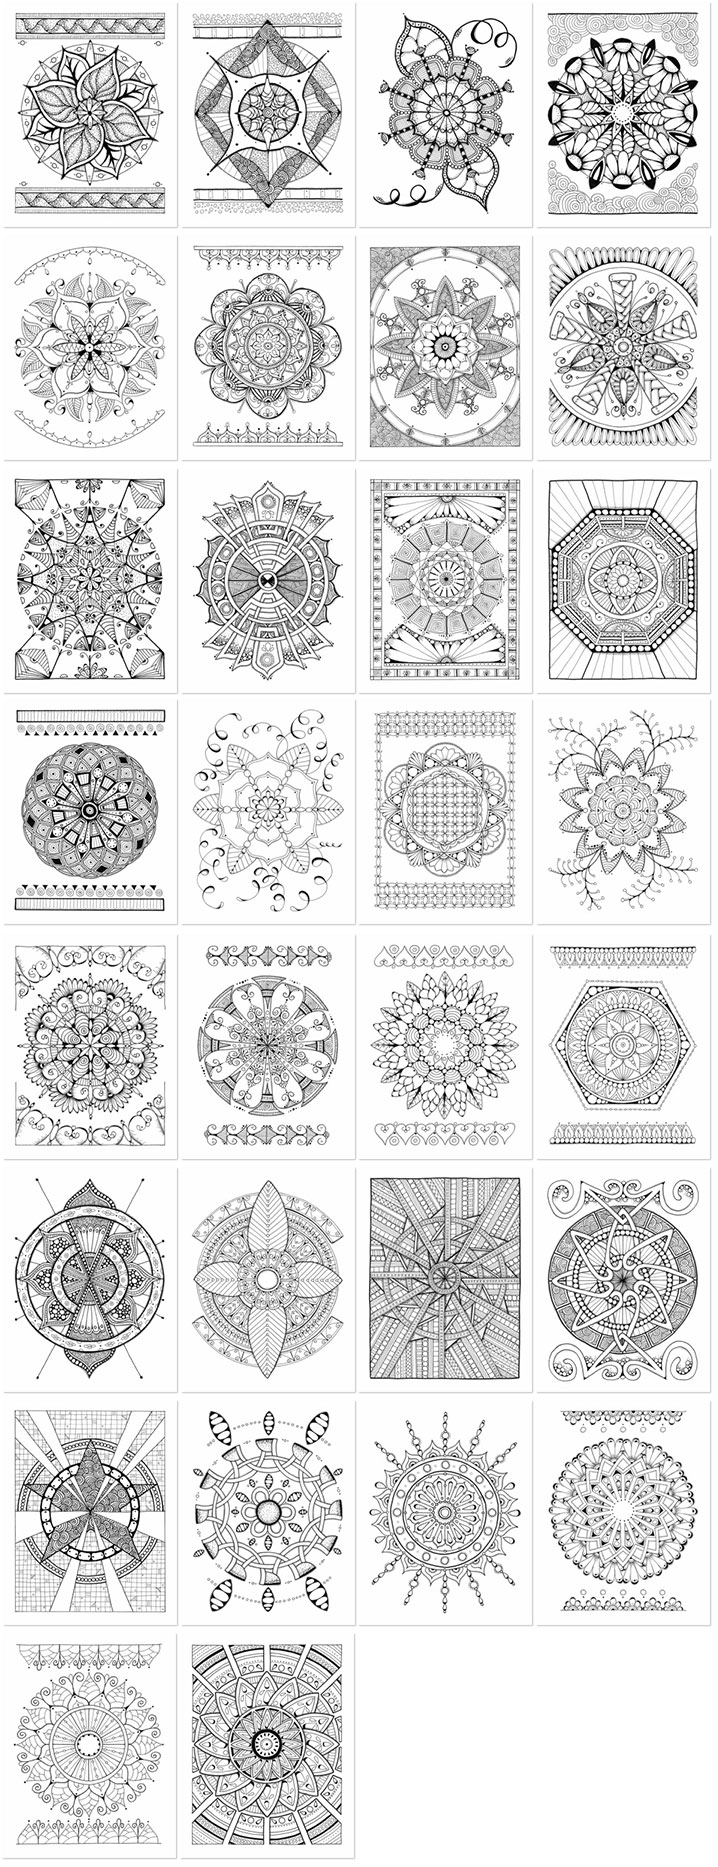 Mandala Bliss Coloring Book Thumbnails